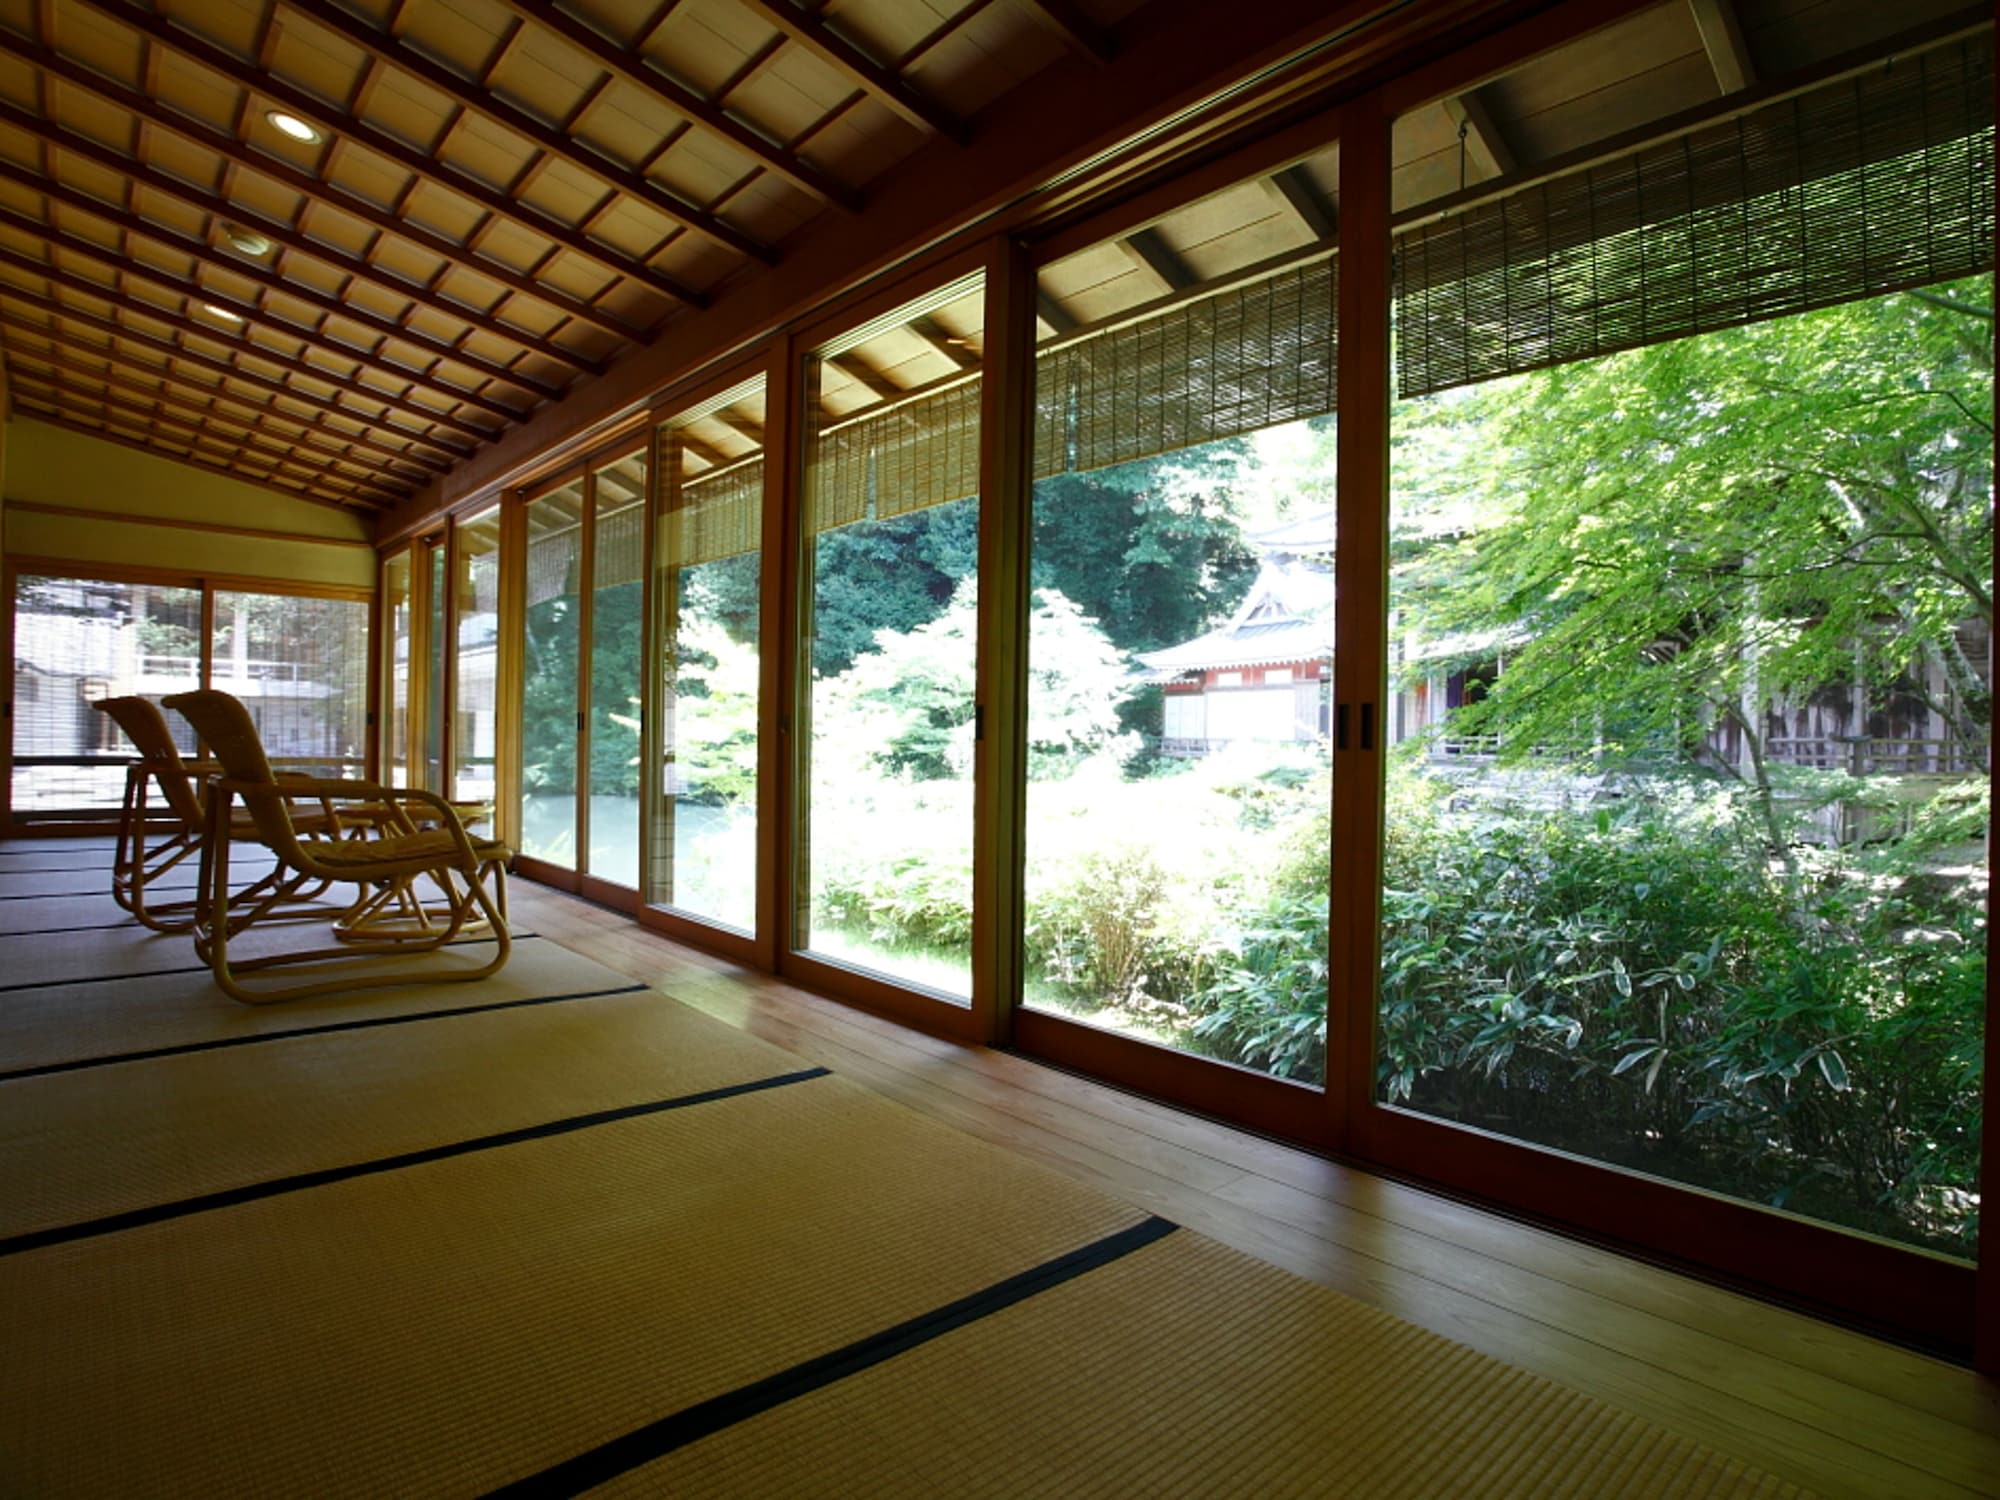 Suite Room with Tatami, Pond View, Room name